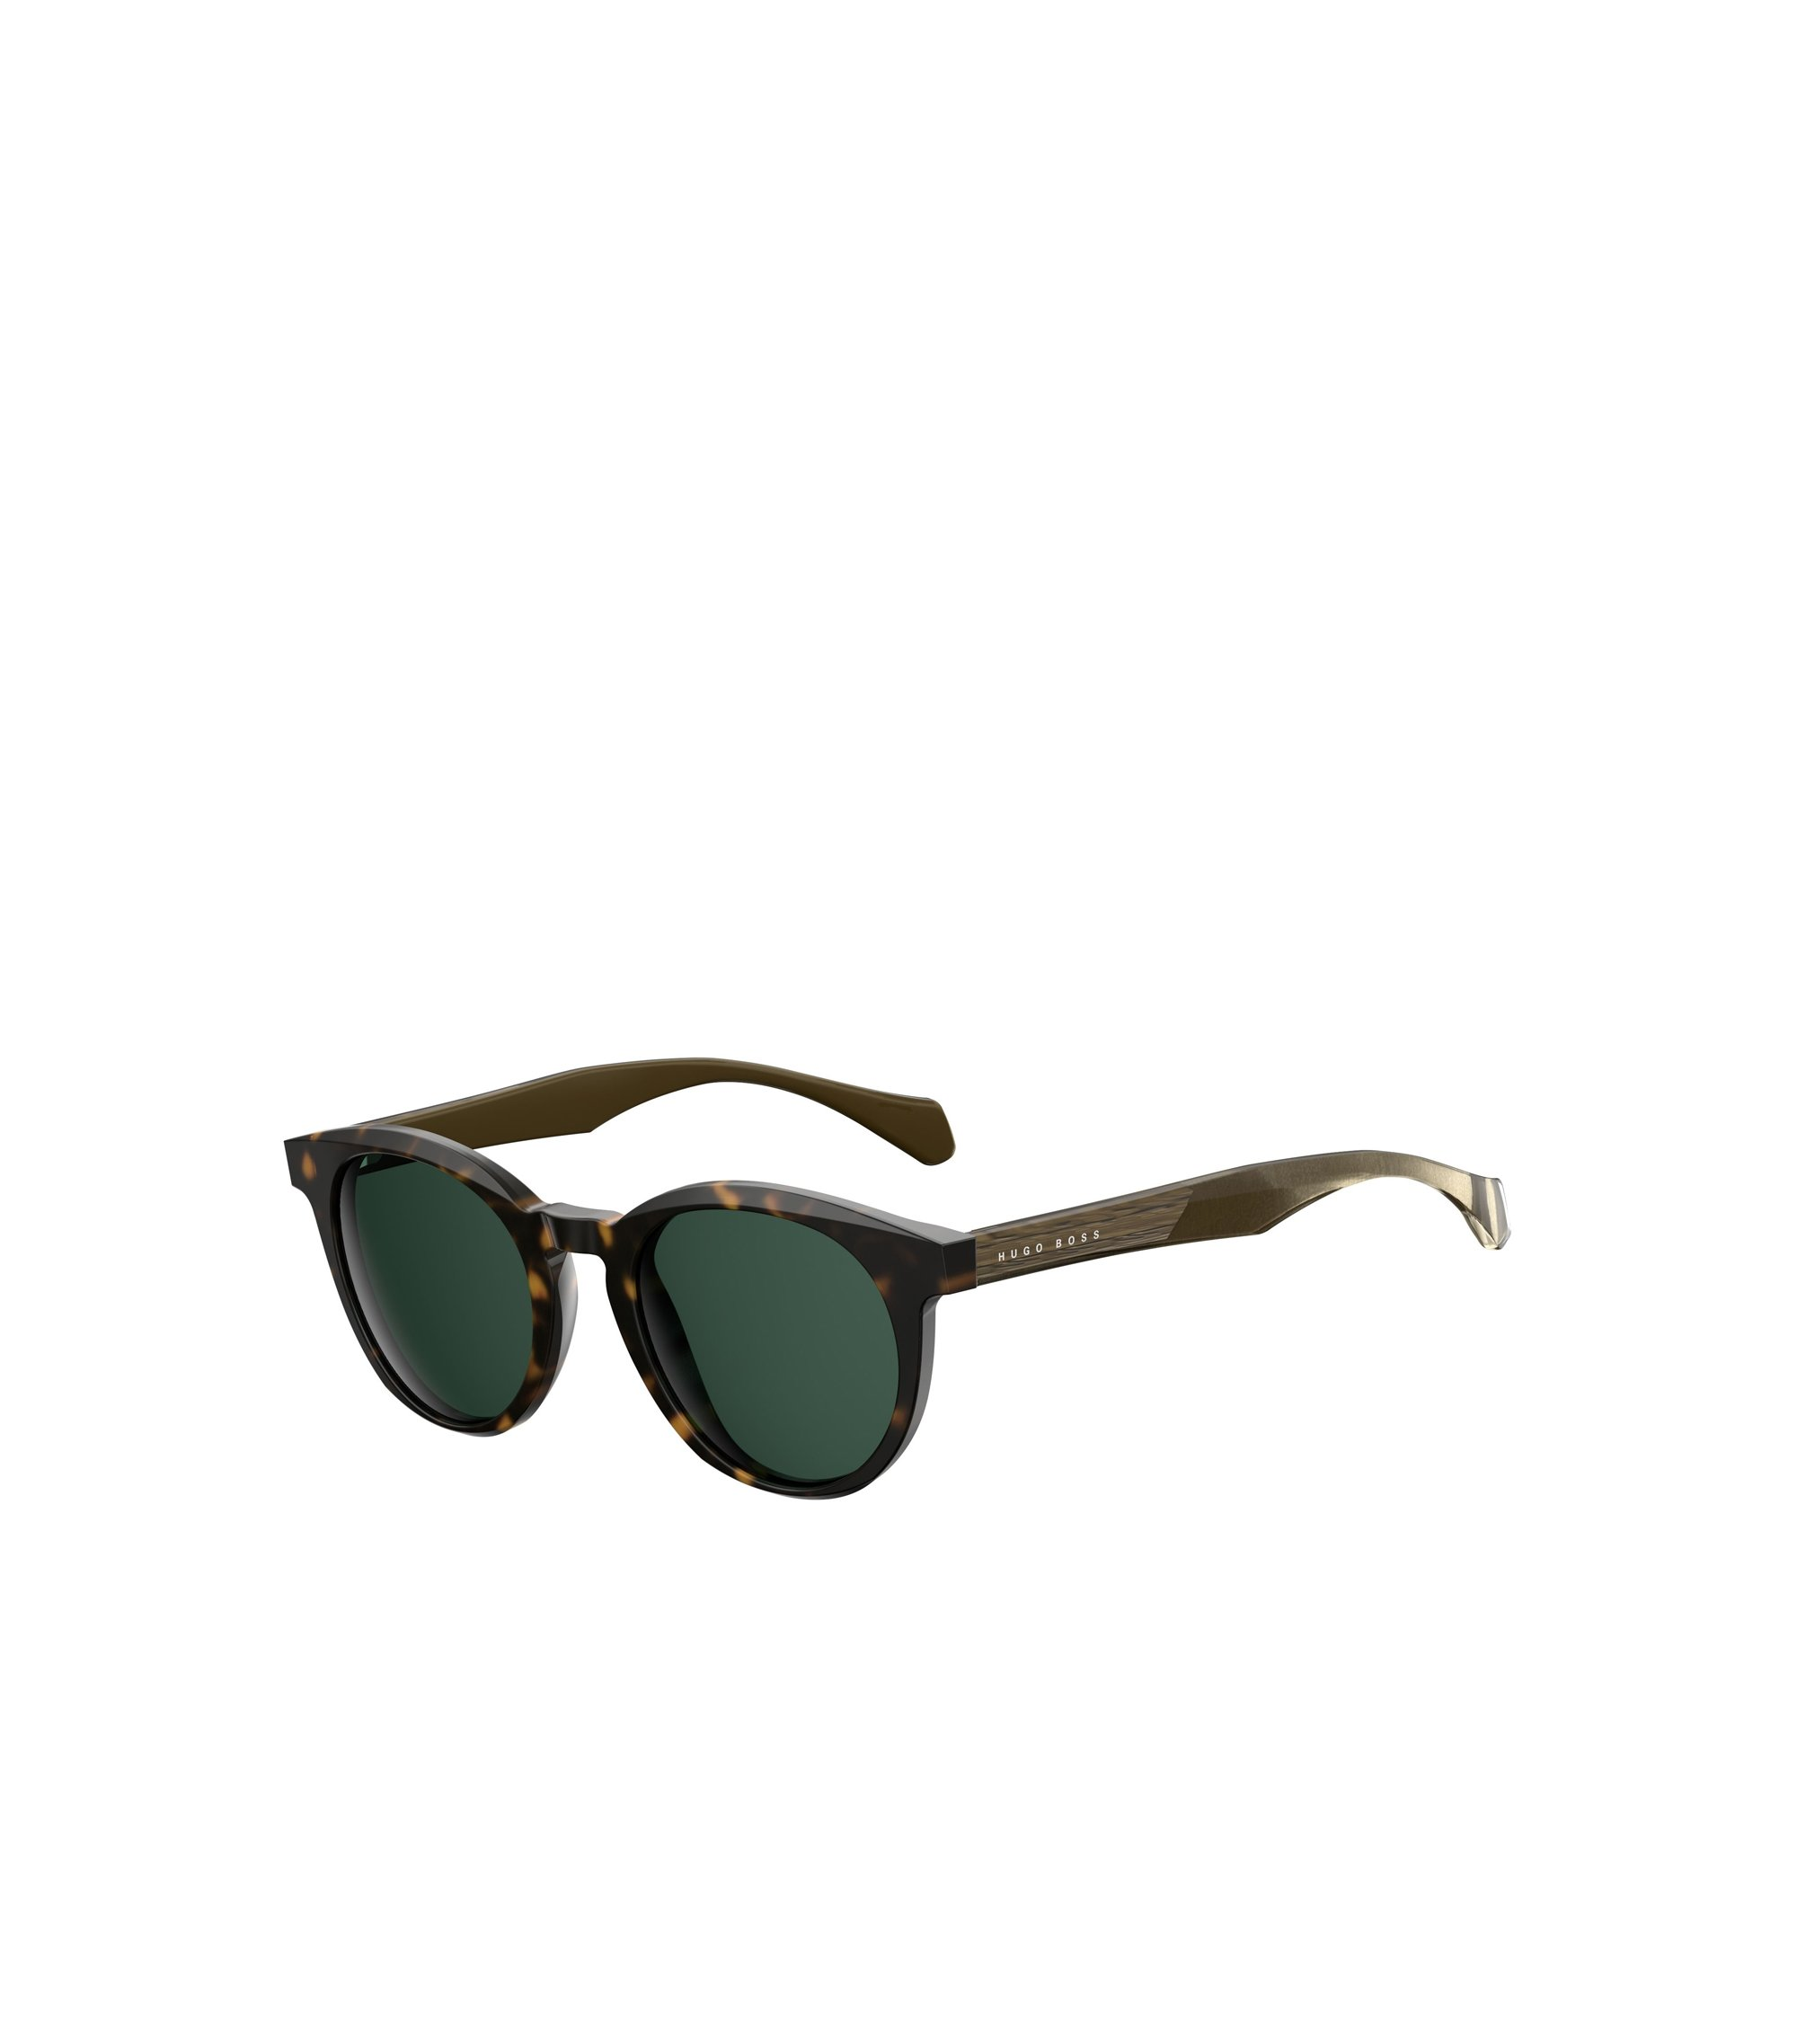 Black Acetate Round Sunglasses | BOSS 0912/S, Assorted-Pre-Pack